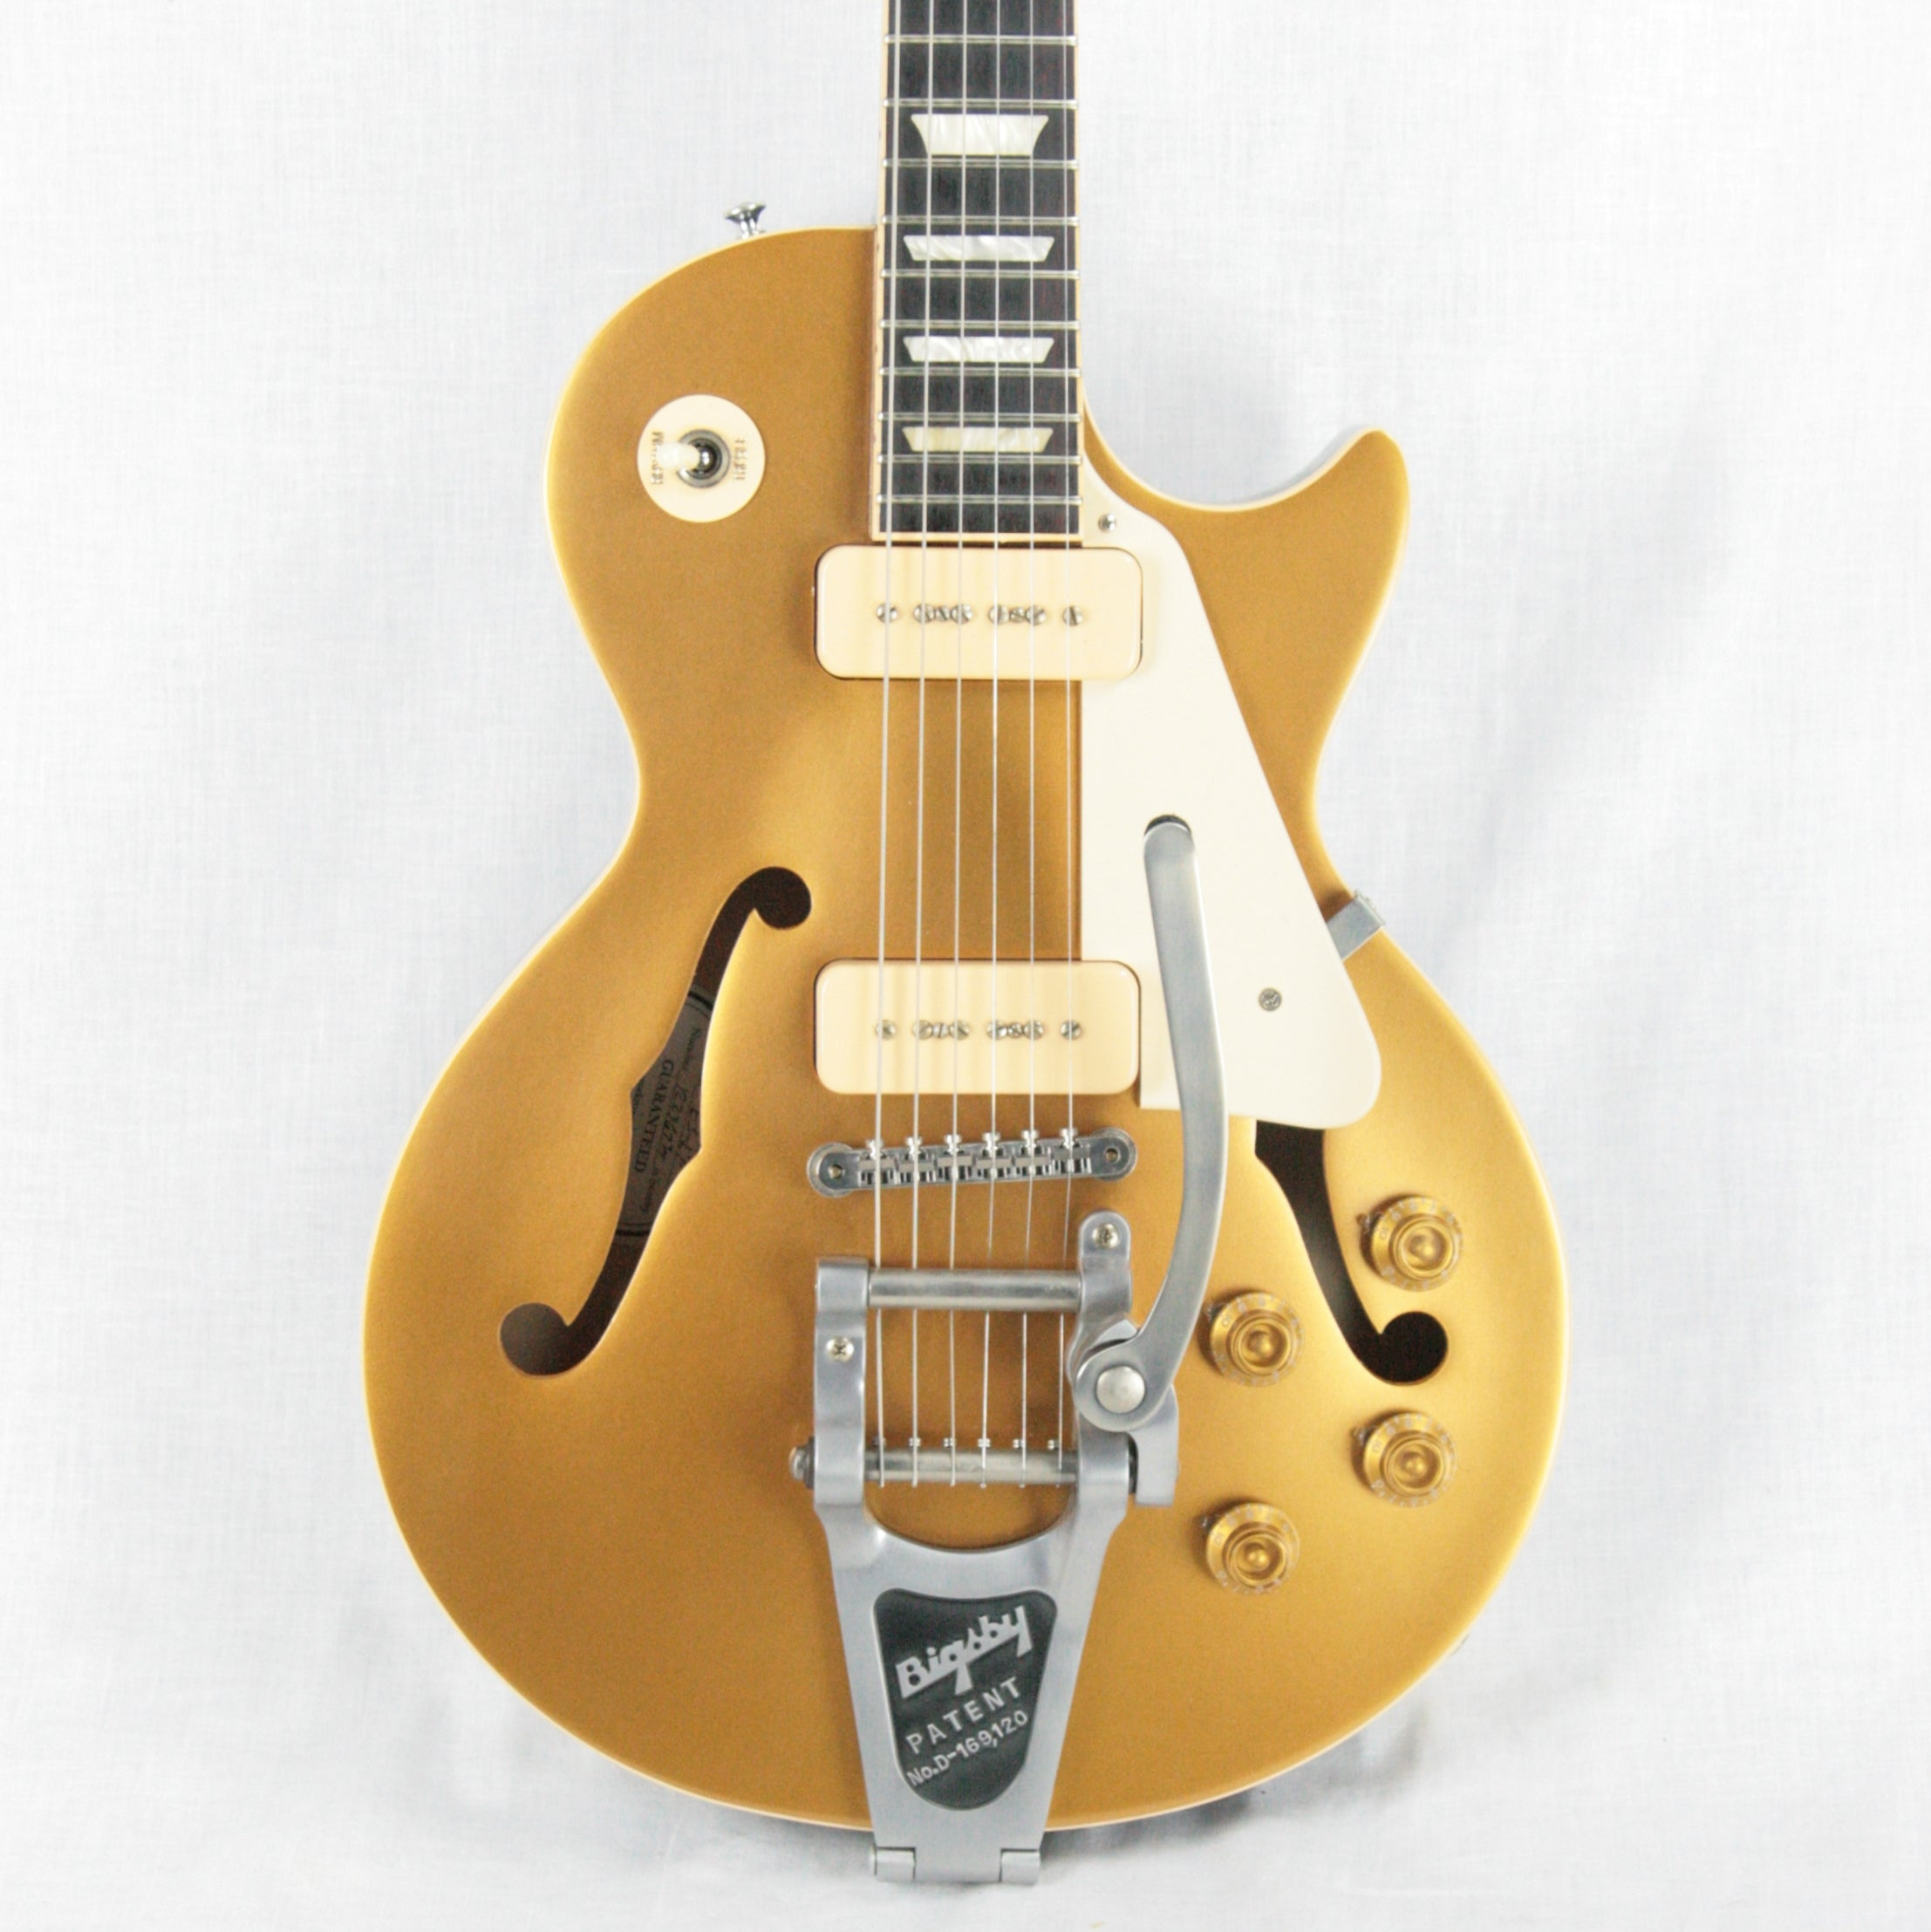 2016 Gibson ES Les Paul Goldtop w/ Bigsby & P90 Pickups! 335 LP Gold Top!